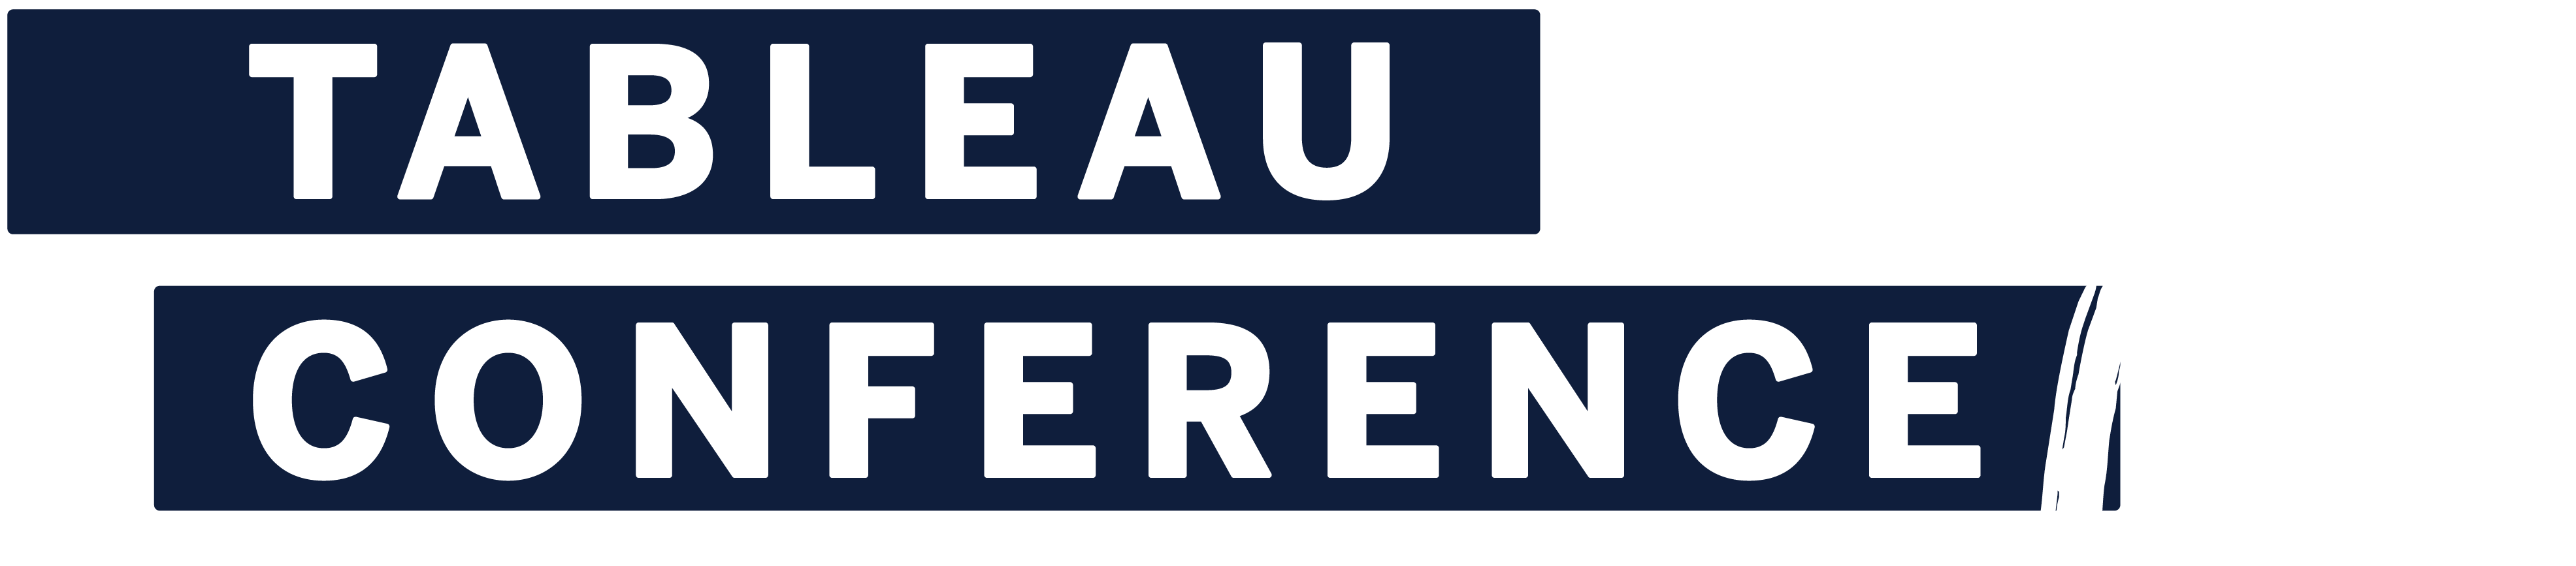 Tableau Conference-ish logo